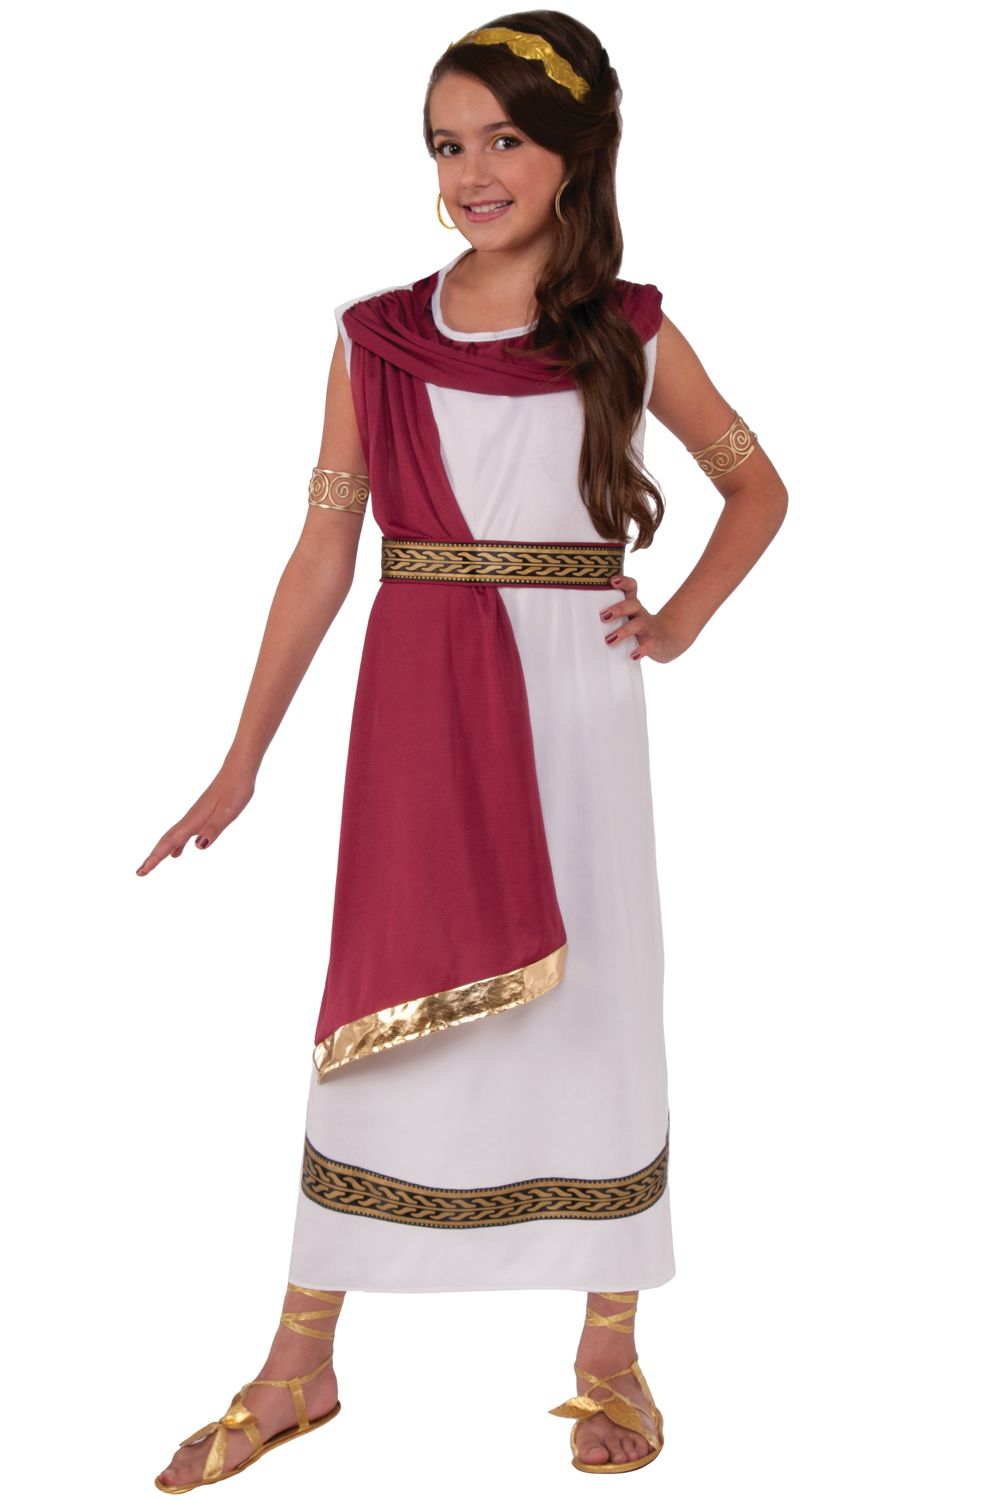 41dcbafe3 Ruby Greek Goddess Child Costume (Medium) | HESTIA | Greek goddess ...